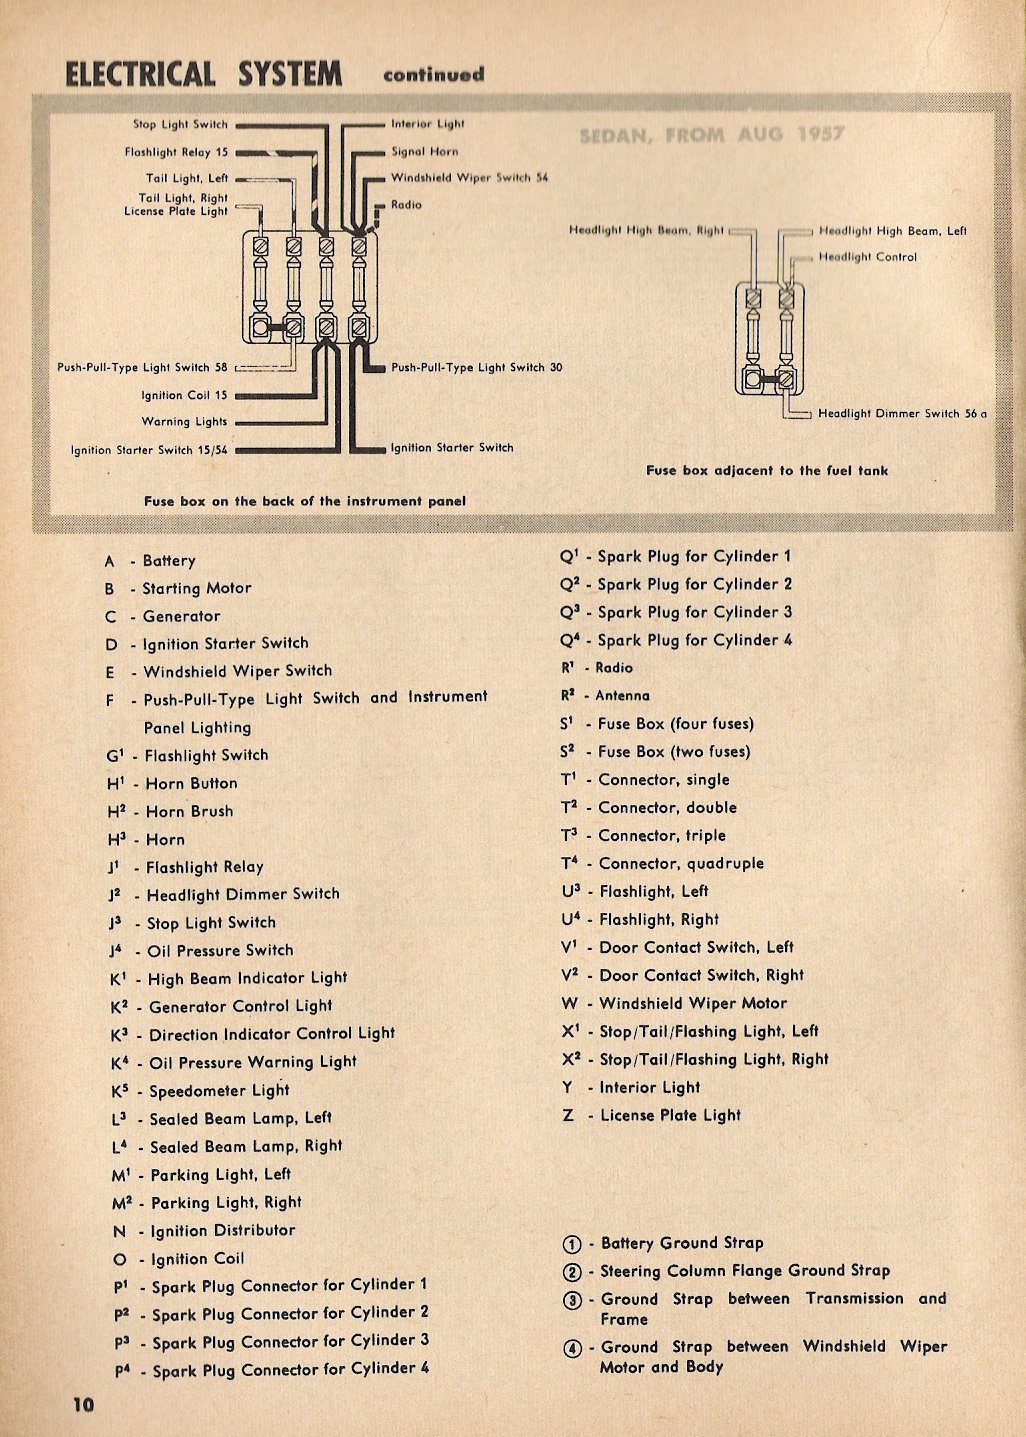 bug_toaug57_key Wiring Diagram For Vw Beetle on vw generator wiring diagram, 1973 vw wiring diagram, 1968 vw wiring schematic, 1970 vw ignition wiring diagram, volkswagen wiring diagram, 1968 vw fuse box, 1970 vw electrical diagram, vw beetle front suspension diagram, vw jetta electrical diagram, vw radio wiring diagram, 1974 vw alternator wiring diagram, 1969 vw wiring diagram, 1968 chevy chevelle wiring diagram, 1972 vw wiring diagram, 1971 vw bus wiring diagram, 68 vw wiring diagram, 71 vw wiring diagram, vw beetle engine diagram, 70 vw wiring diagram, 1960 vw wiring diagram,